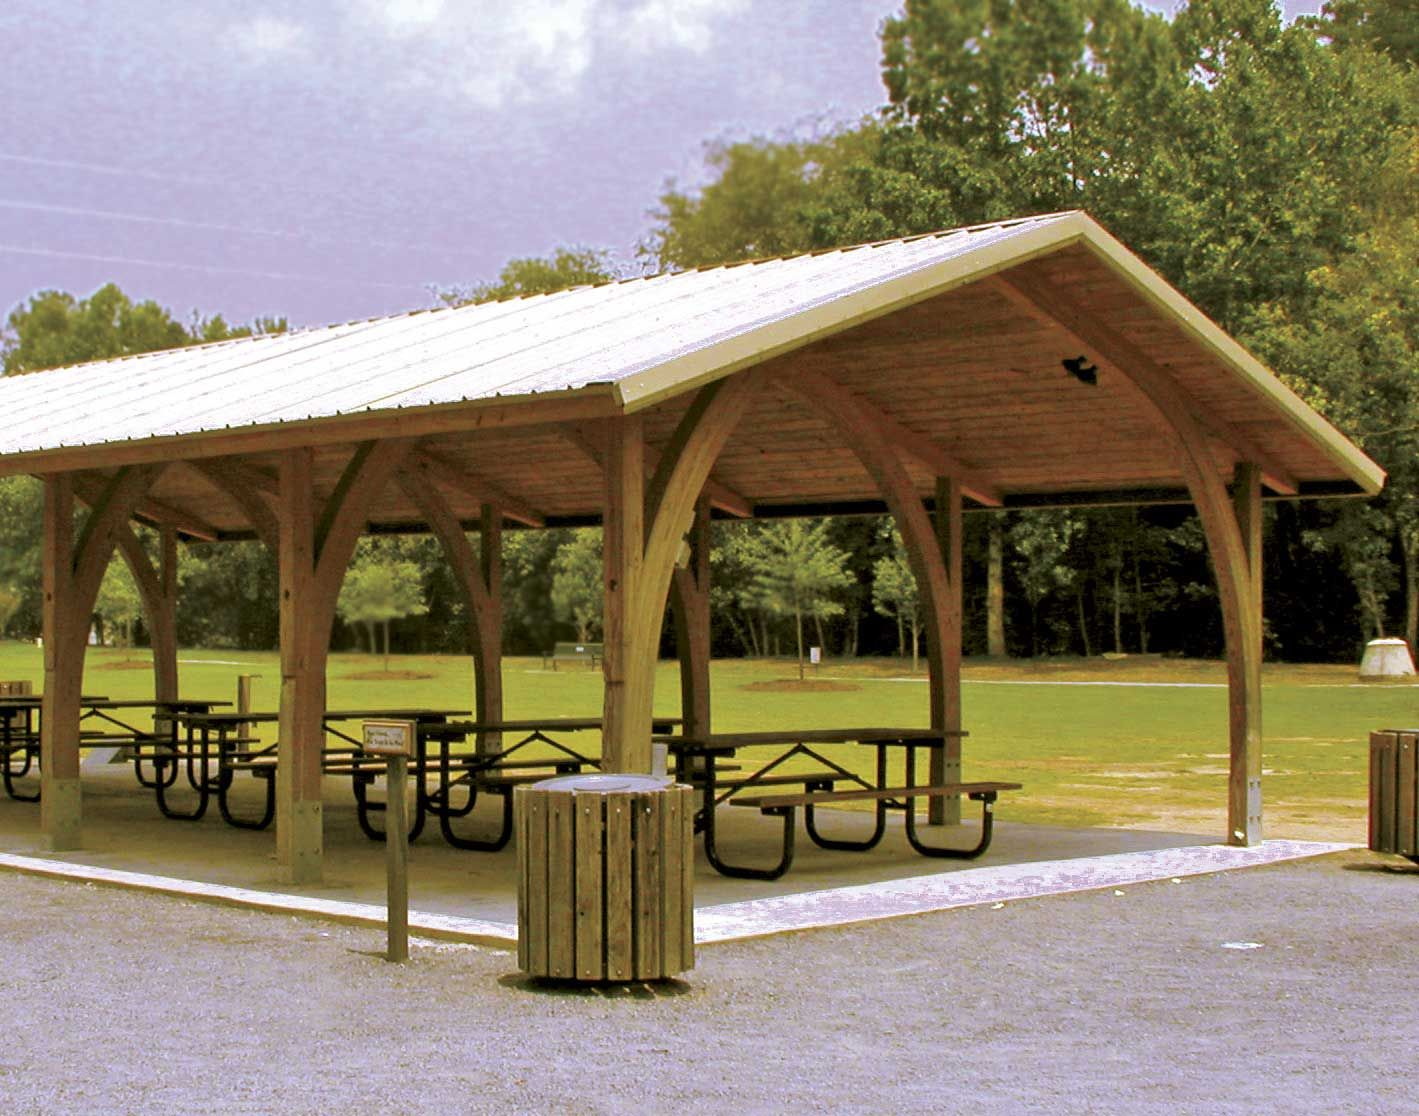 pavilions | Outdoor Learning | Education | Pinterest ...